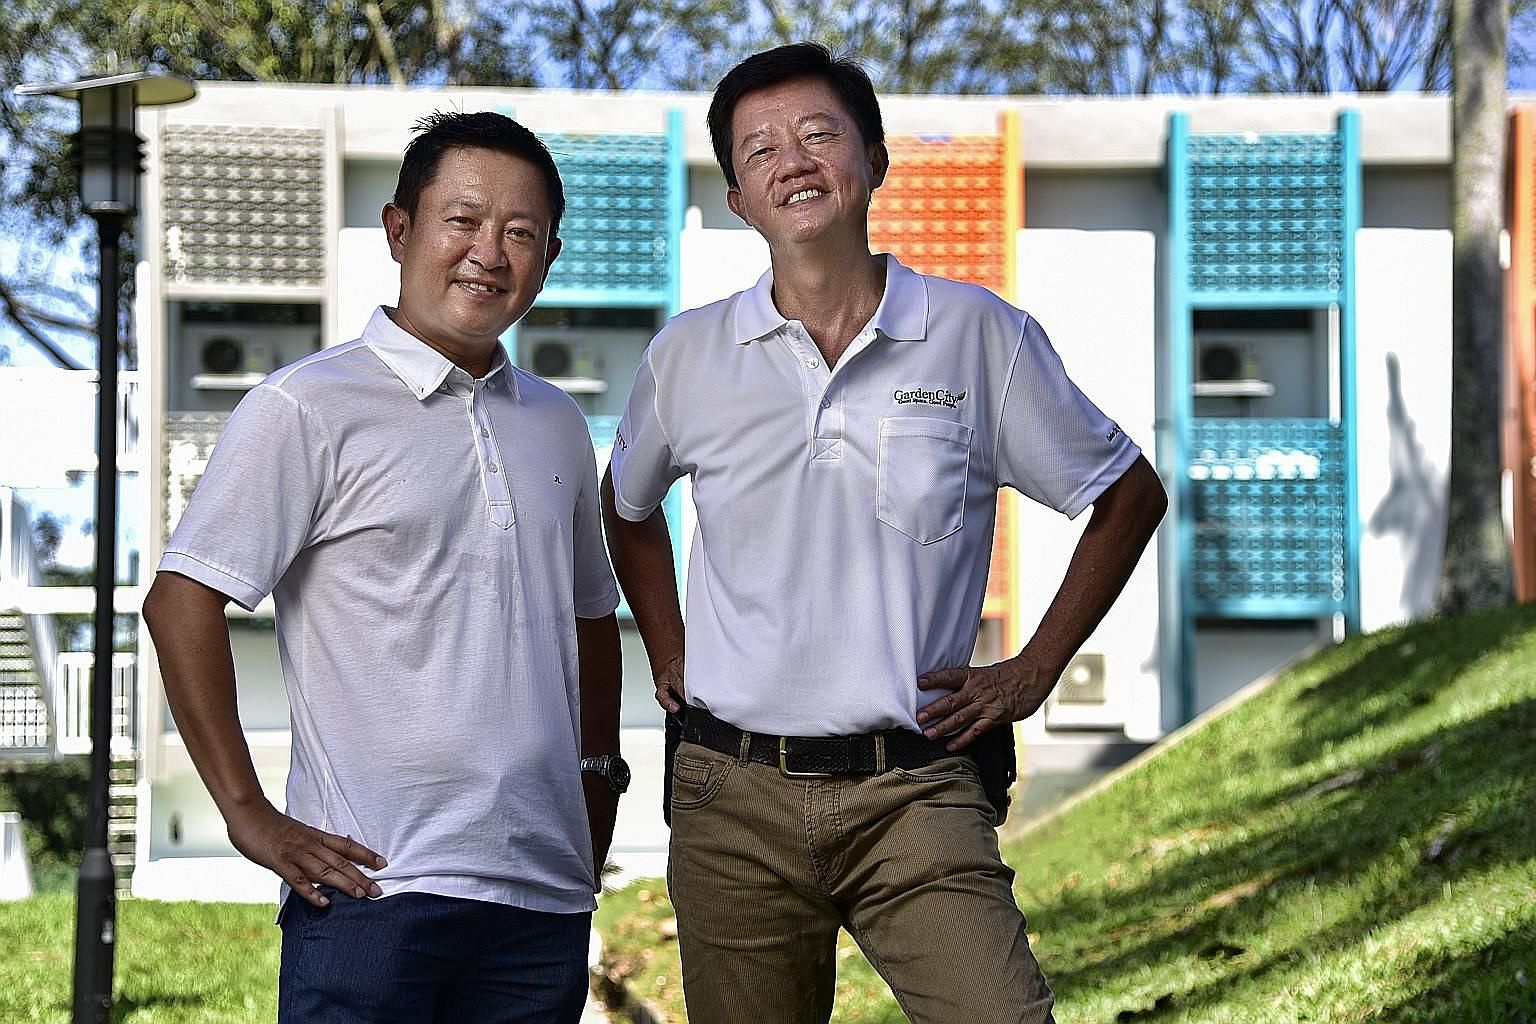 Garden City Management CEO Kelvin Low (left) hired 57-year-old Mr Kenneth Lee, who has a degree in business administration and is also a qualified fire safety manager, as he had the relevant skills.